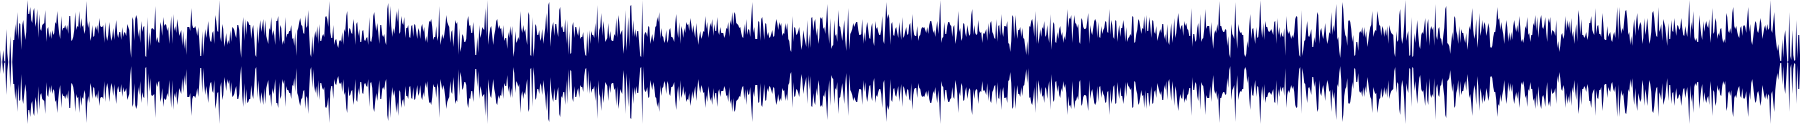 waveform of track #69855